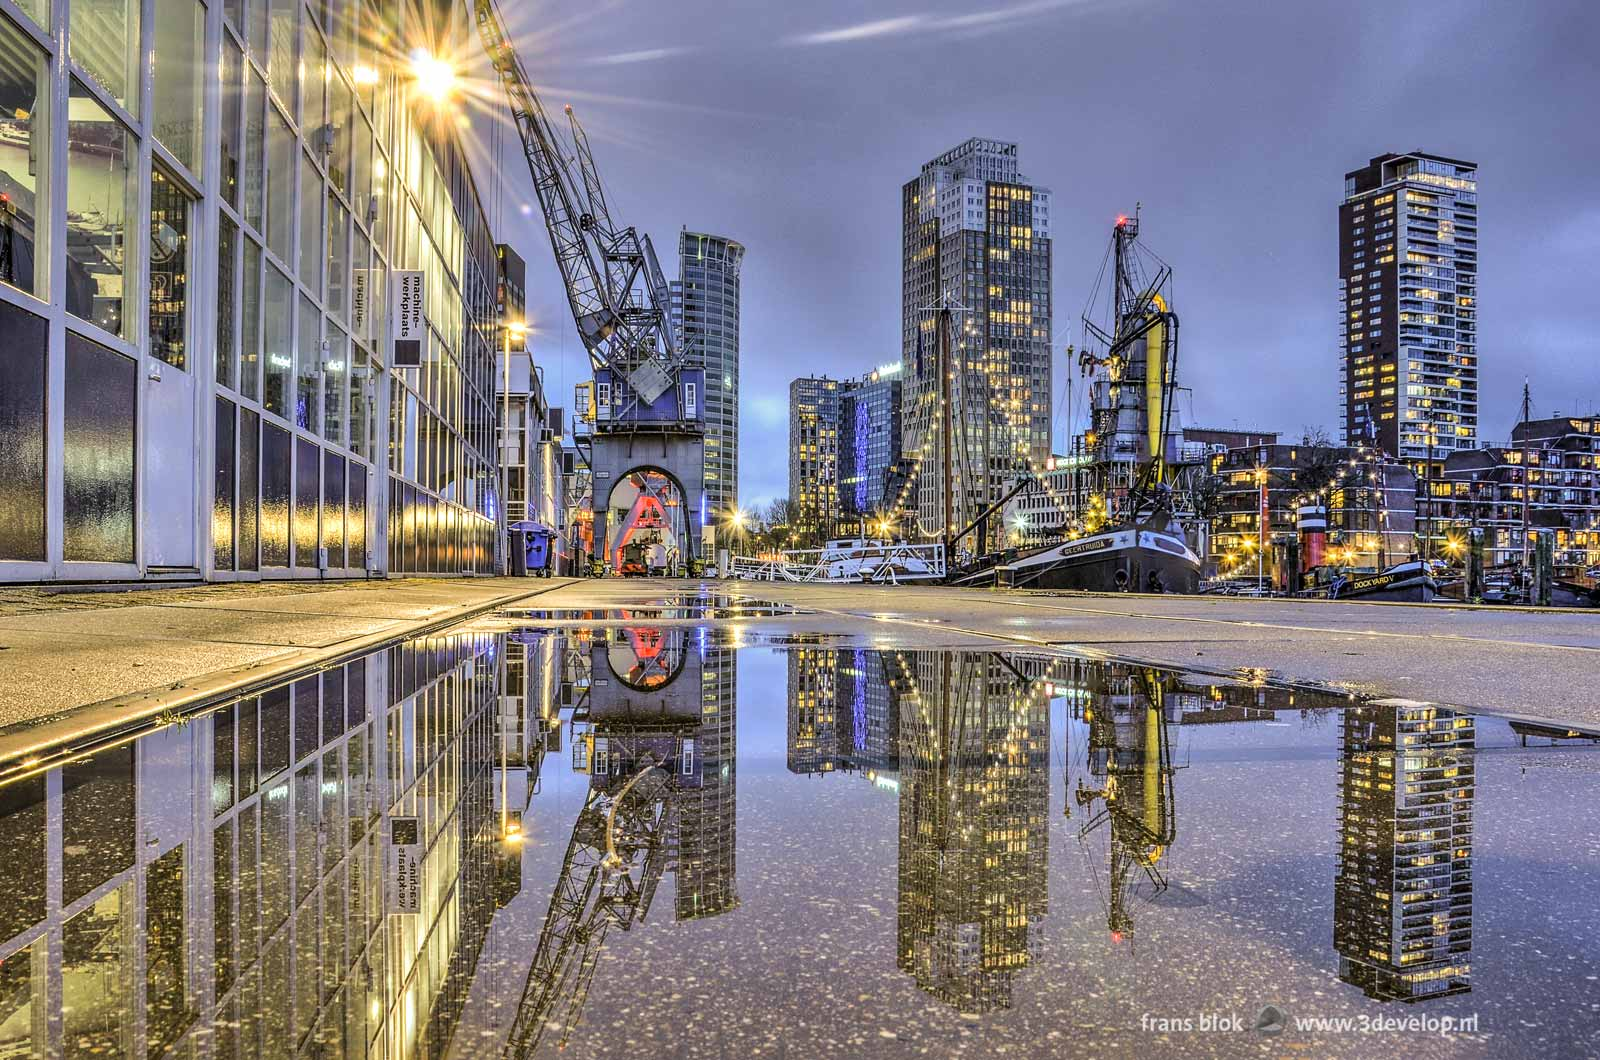 Puddlegram: reflection of cranes, boats, grain elevator as well as office and residential towers in a puddle on the quay at the Maritime Outdoor Museum on Leuvehaven in Rotterdam